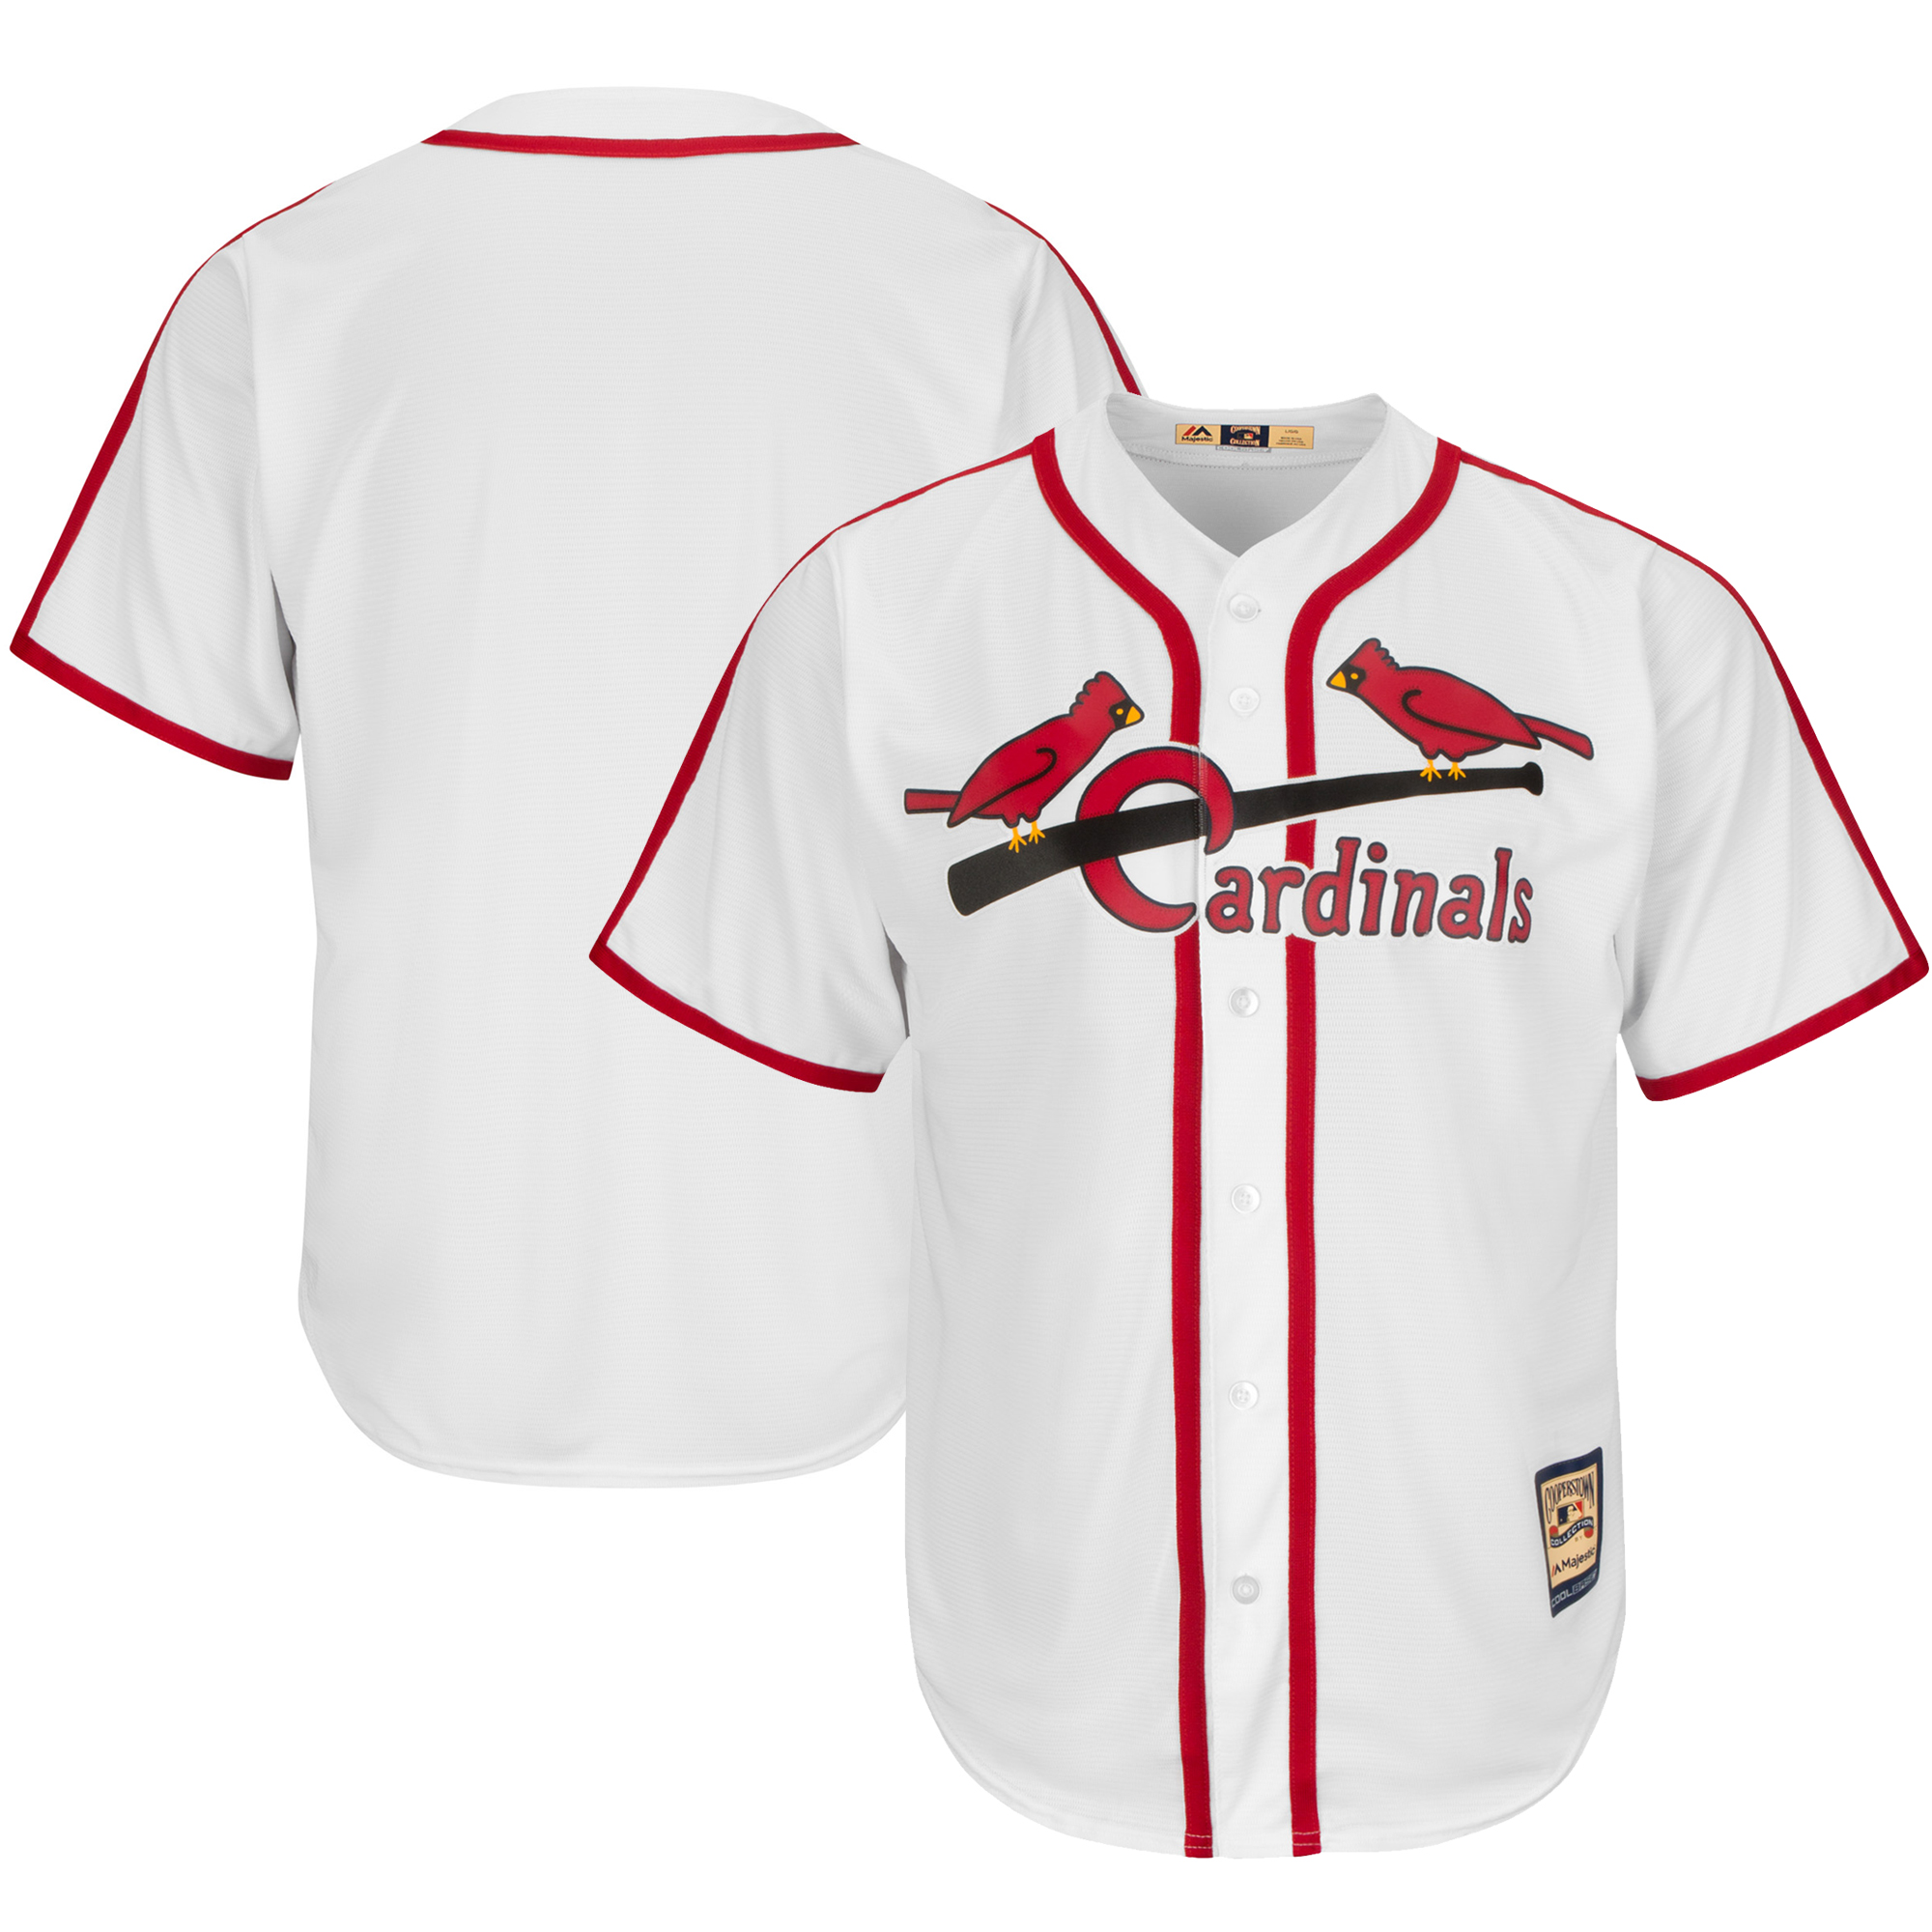 online store 8c421 24c71 St. Louis Cardinals Majestic Cooperstown Cool Base Team Jersey - White